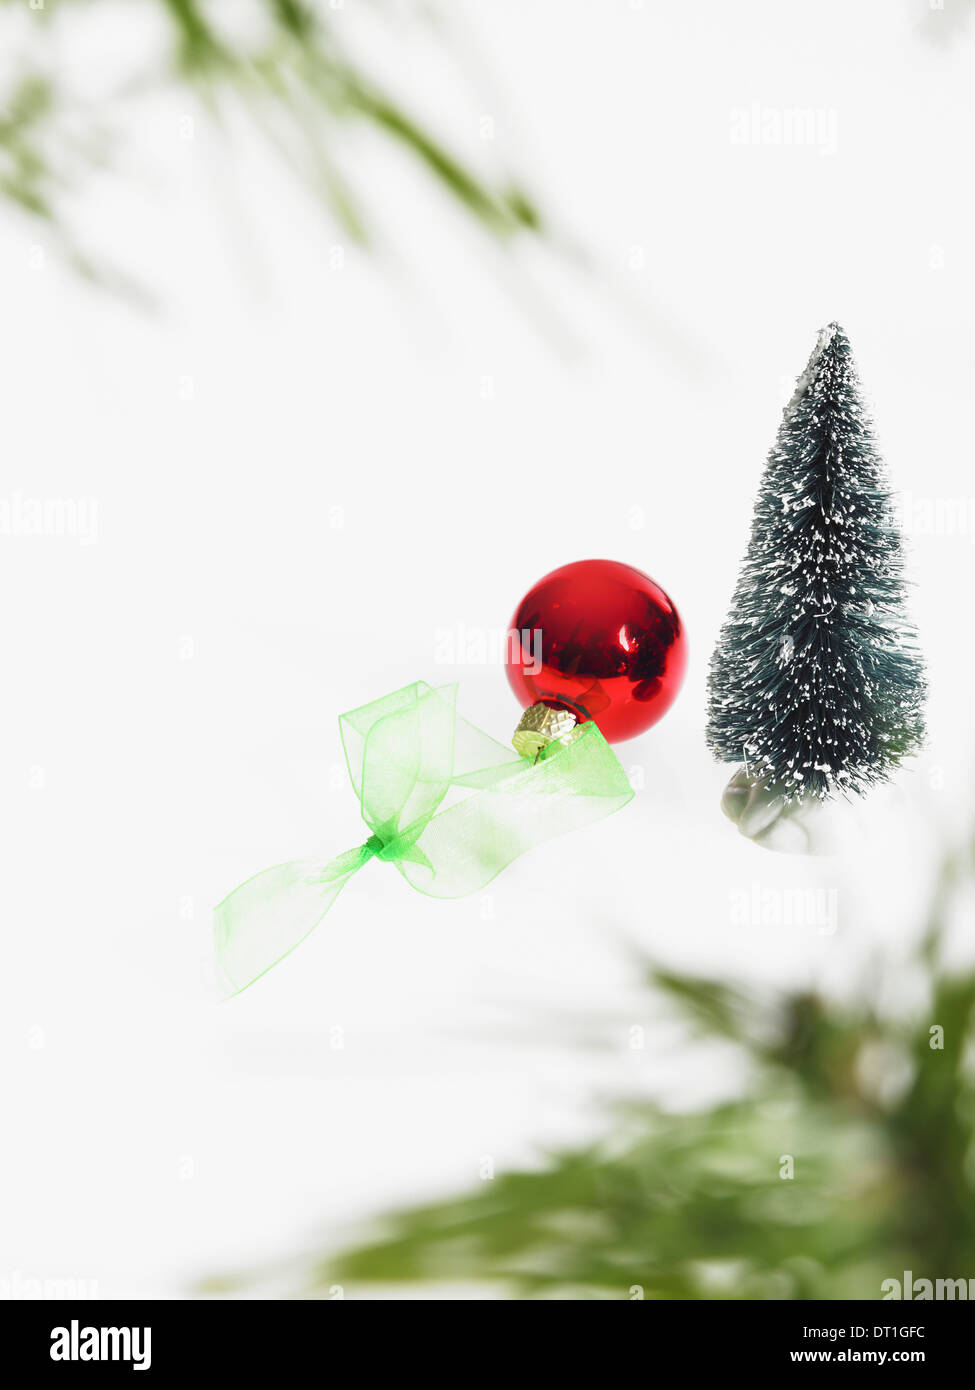 Still life Green leaf foliage and decorations A pine tree branch with green needles Christmas decorations A red ornament - Stock Image